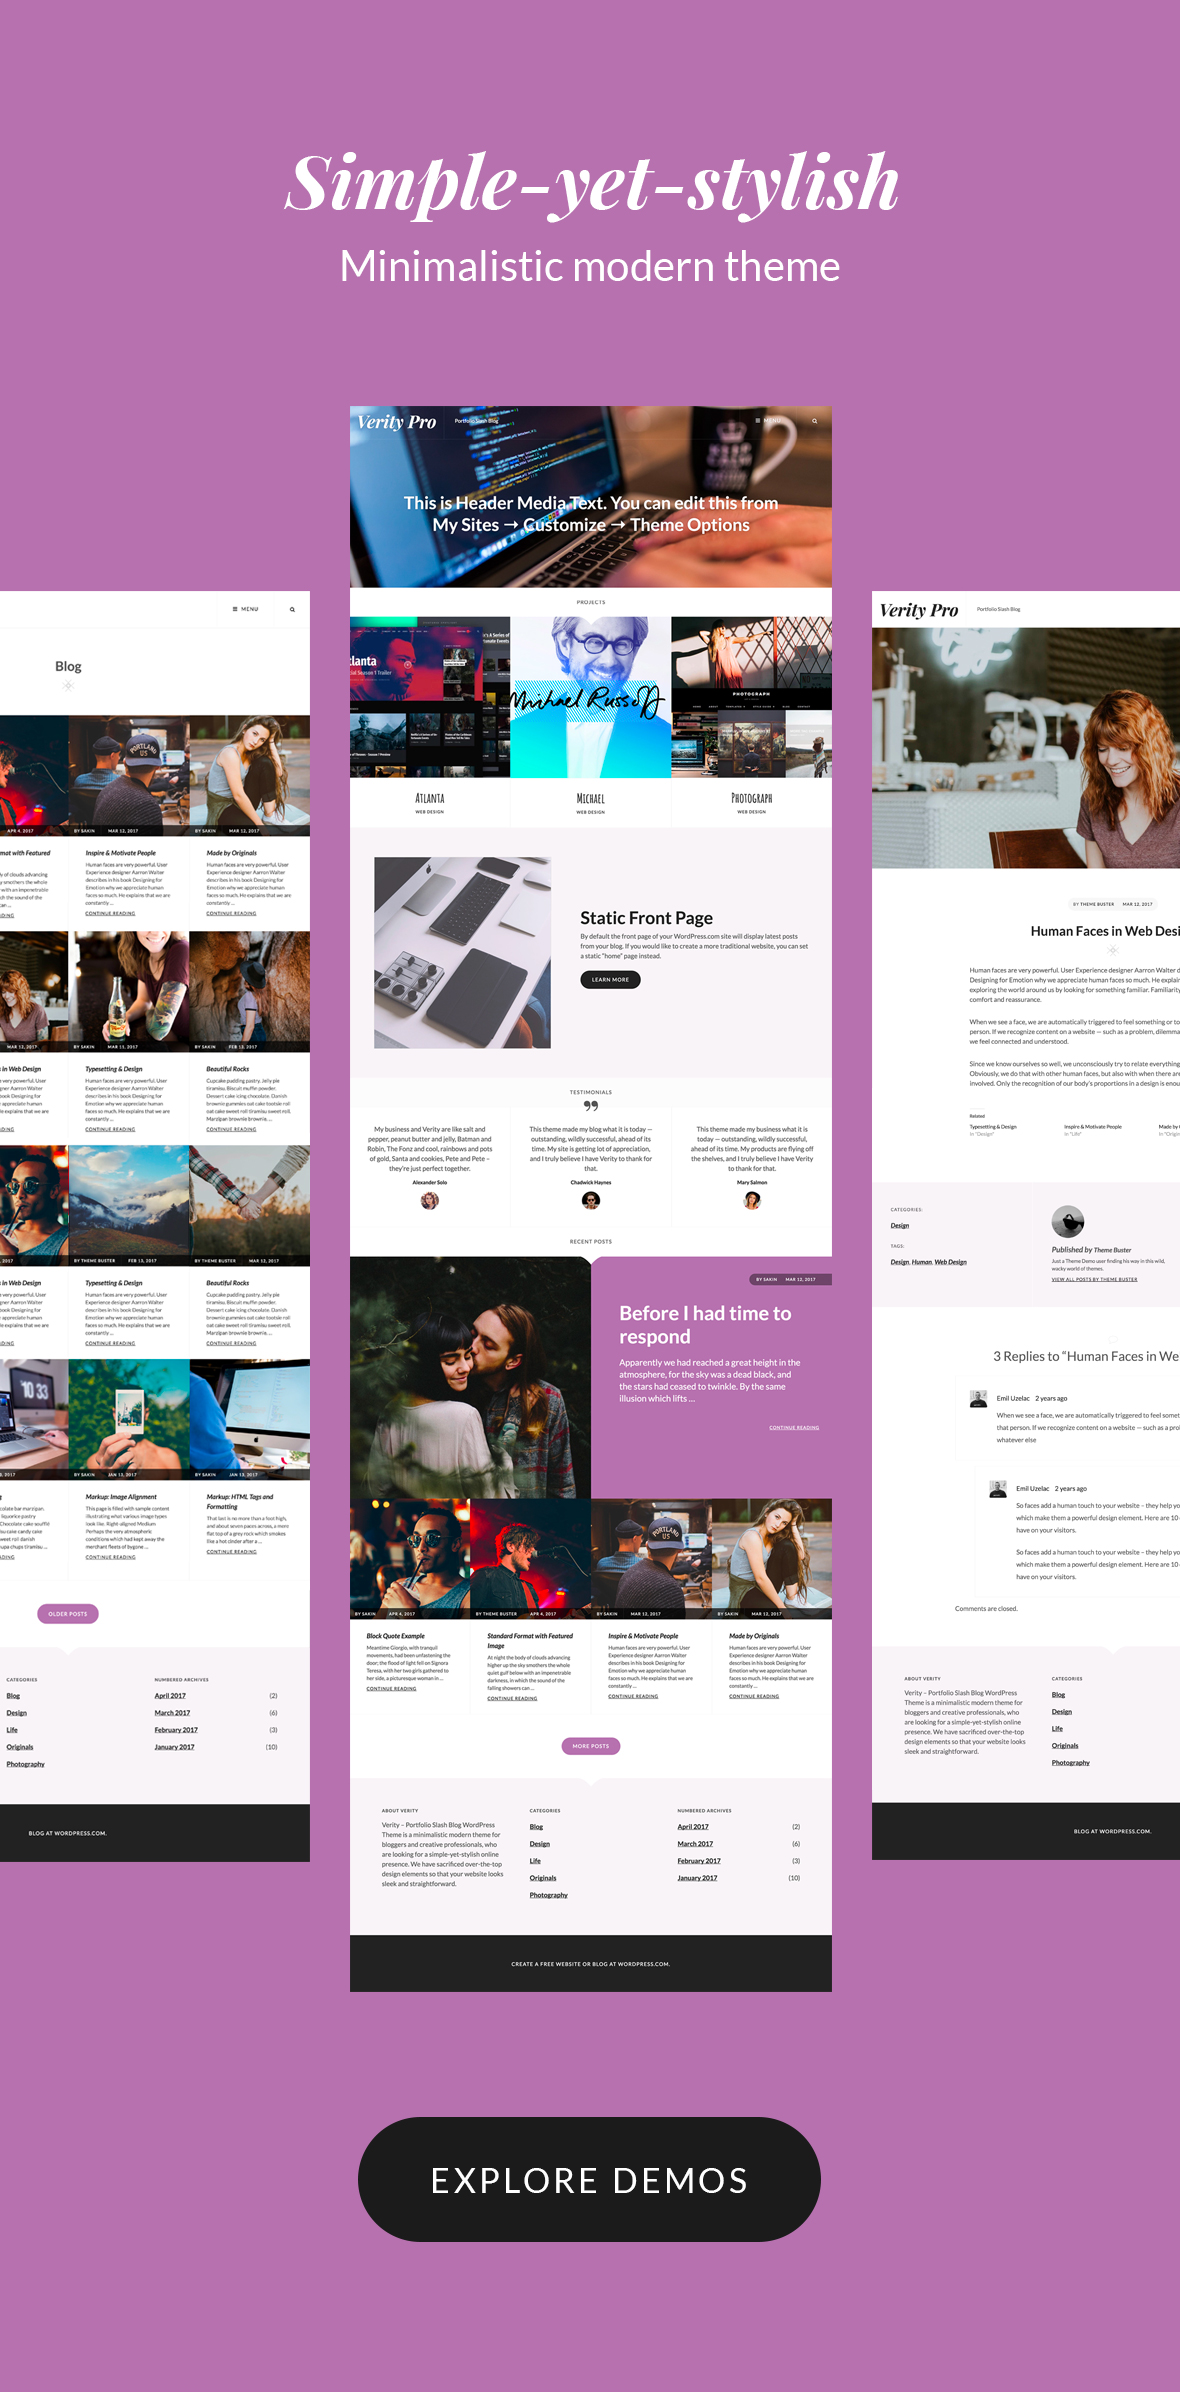 homepage-layout.jpg